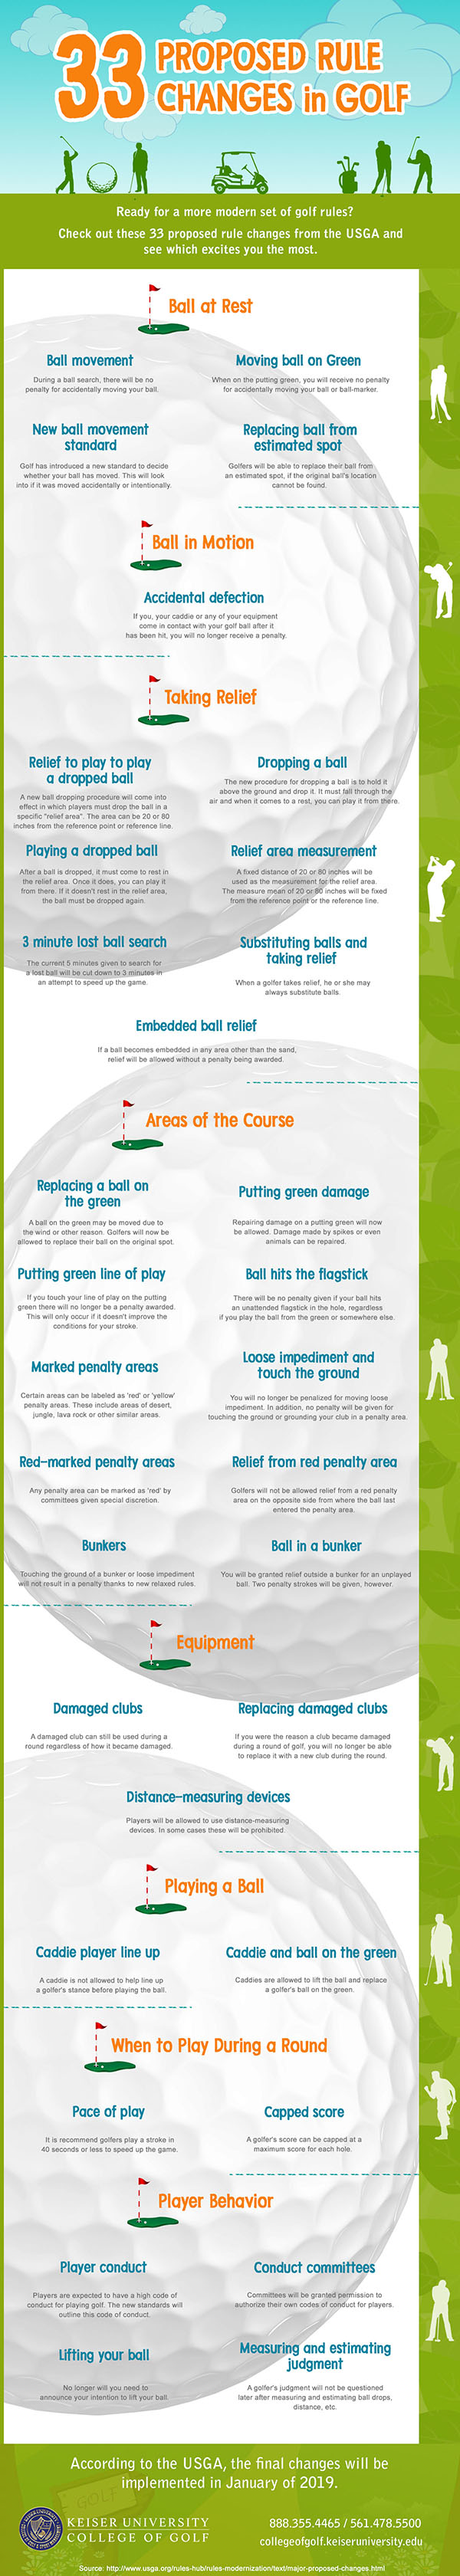 33 proposed Rule Changes in Golf